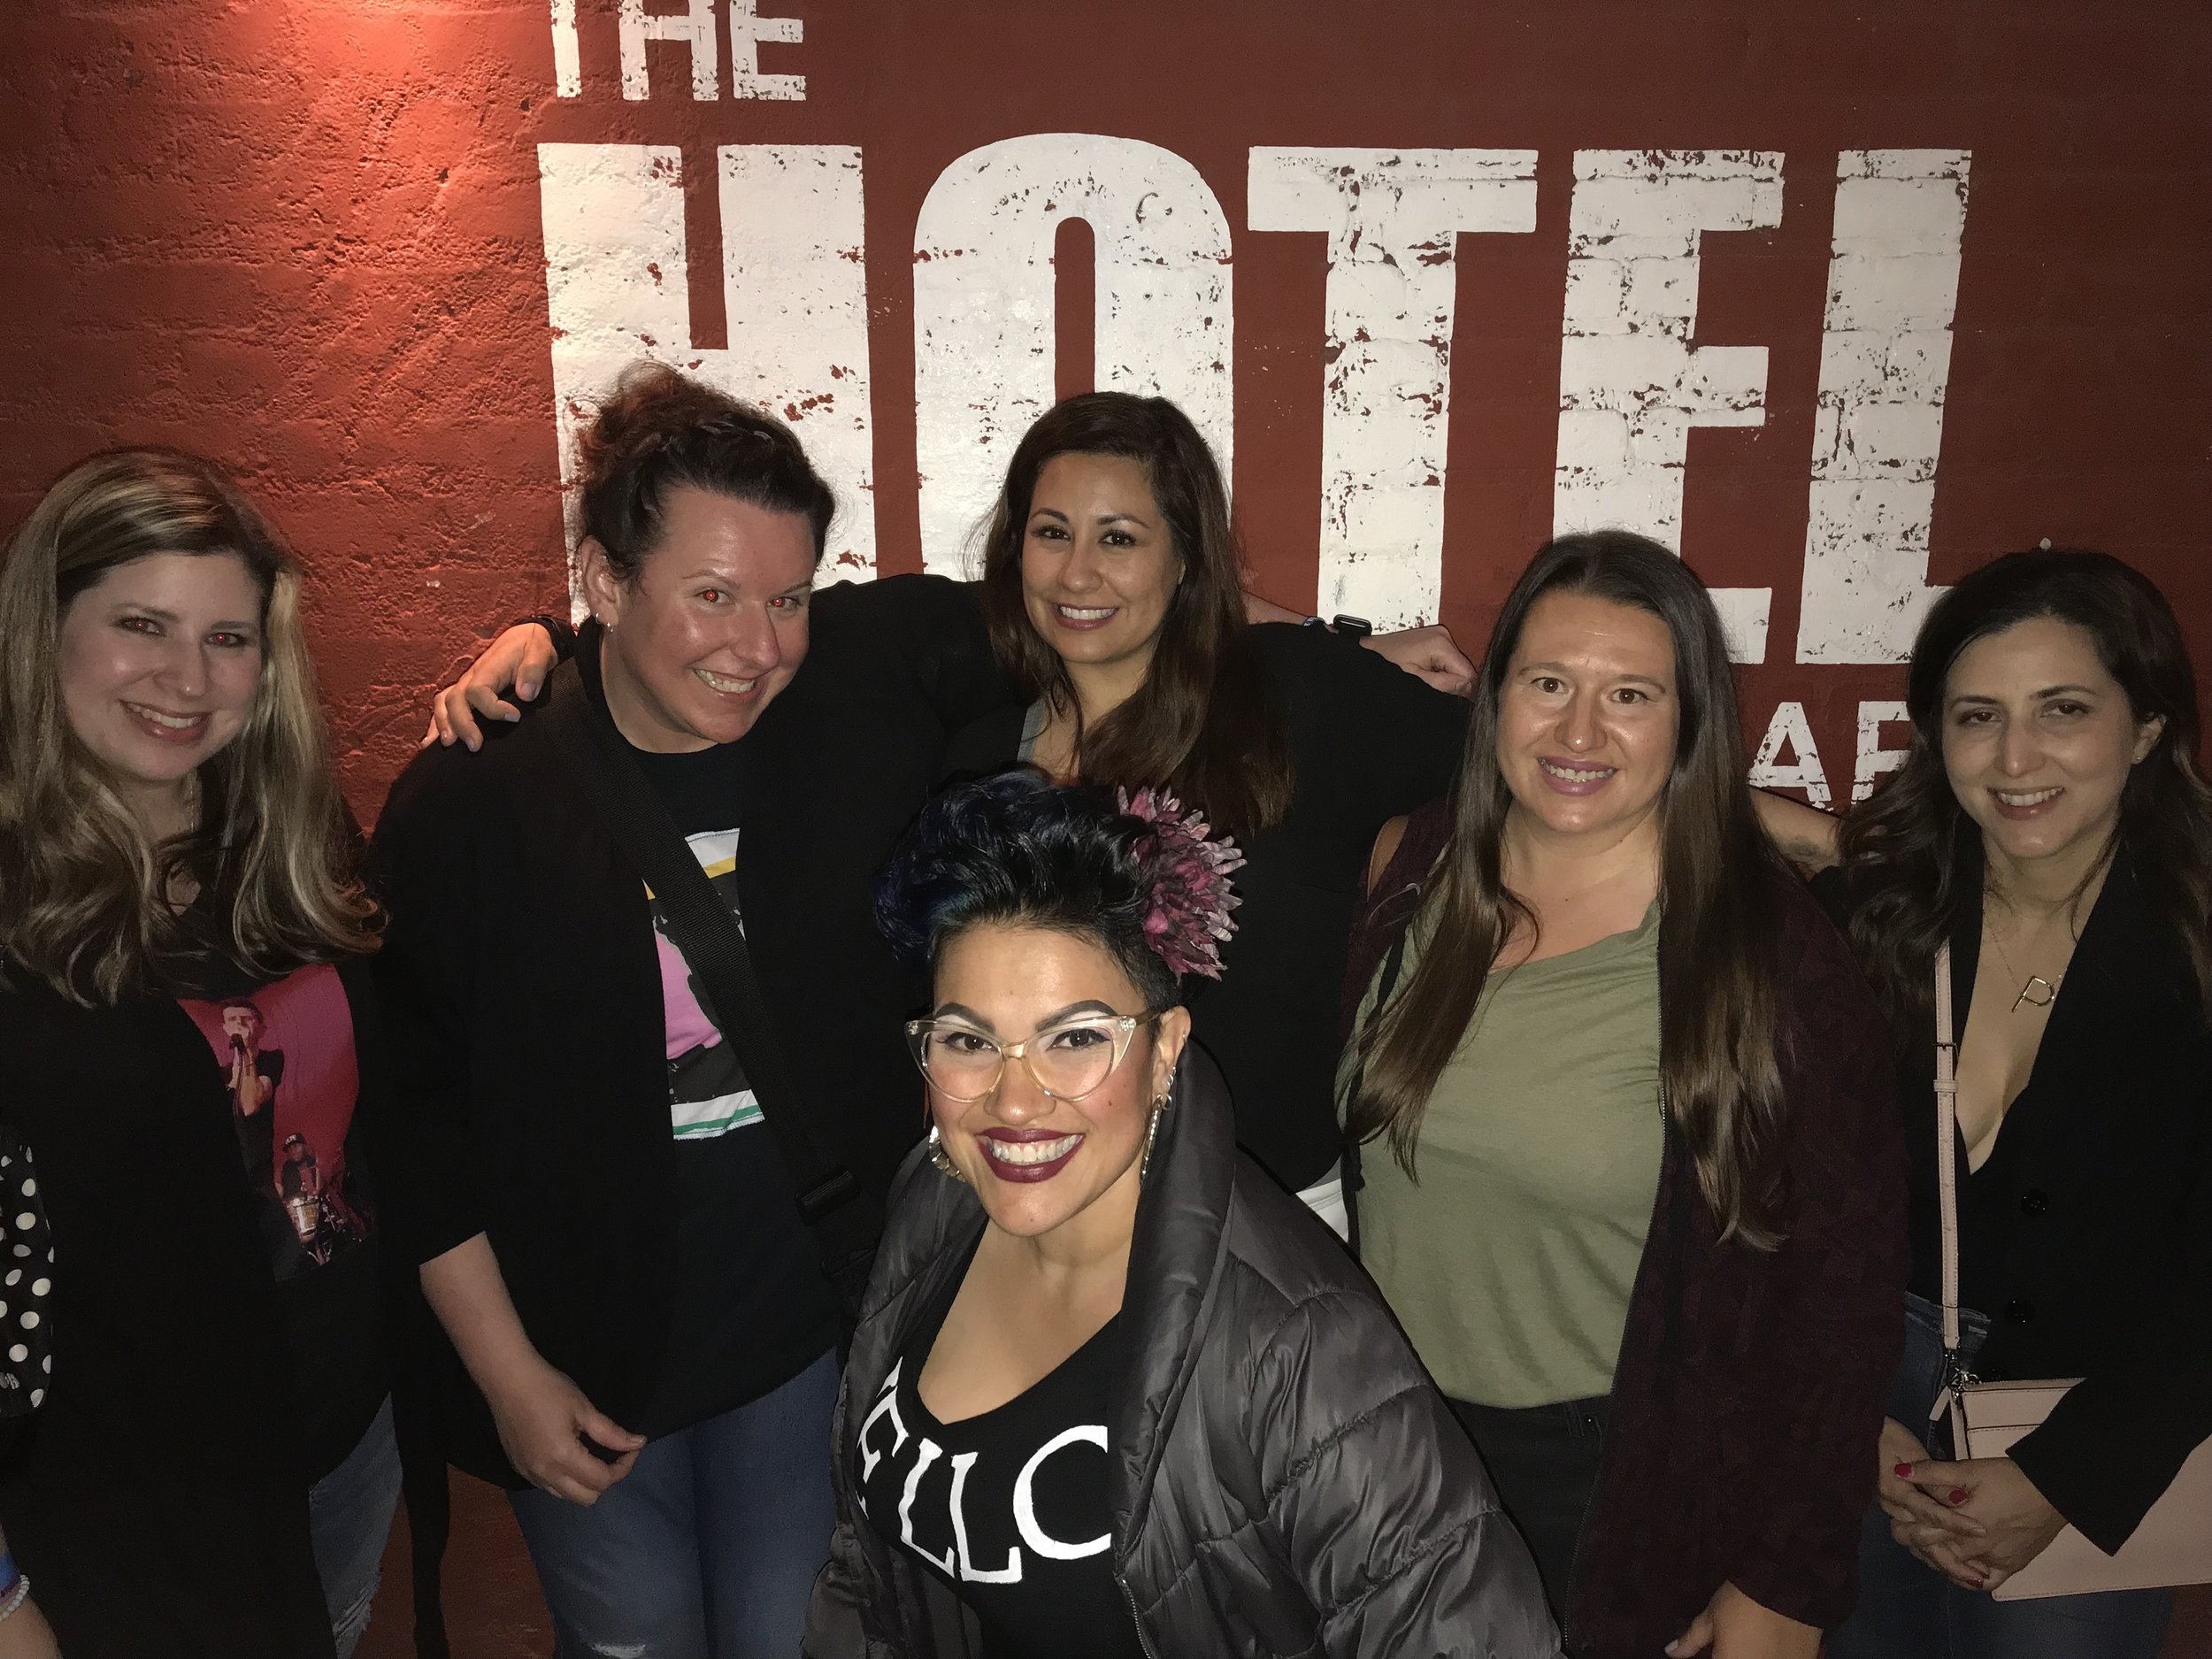 End of the night group pic - Kristine, Nikki, Jenny, Mandy, Patty, Charlene - Standing outside of The Hotel Cafe - Joey McIntyre - Hollywood Nights (Photo by Mandy)